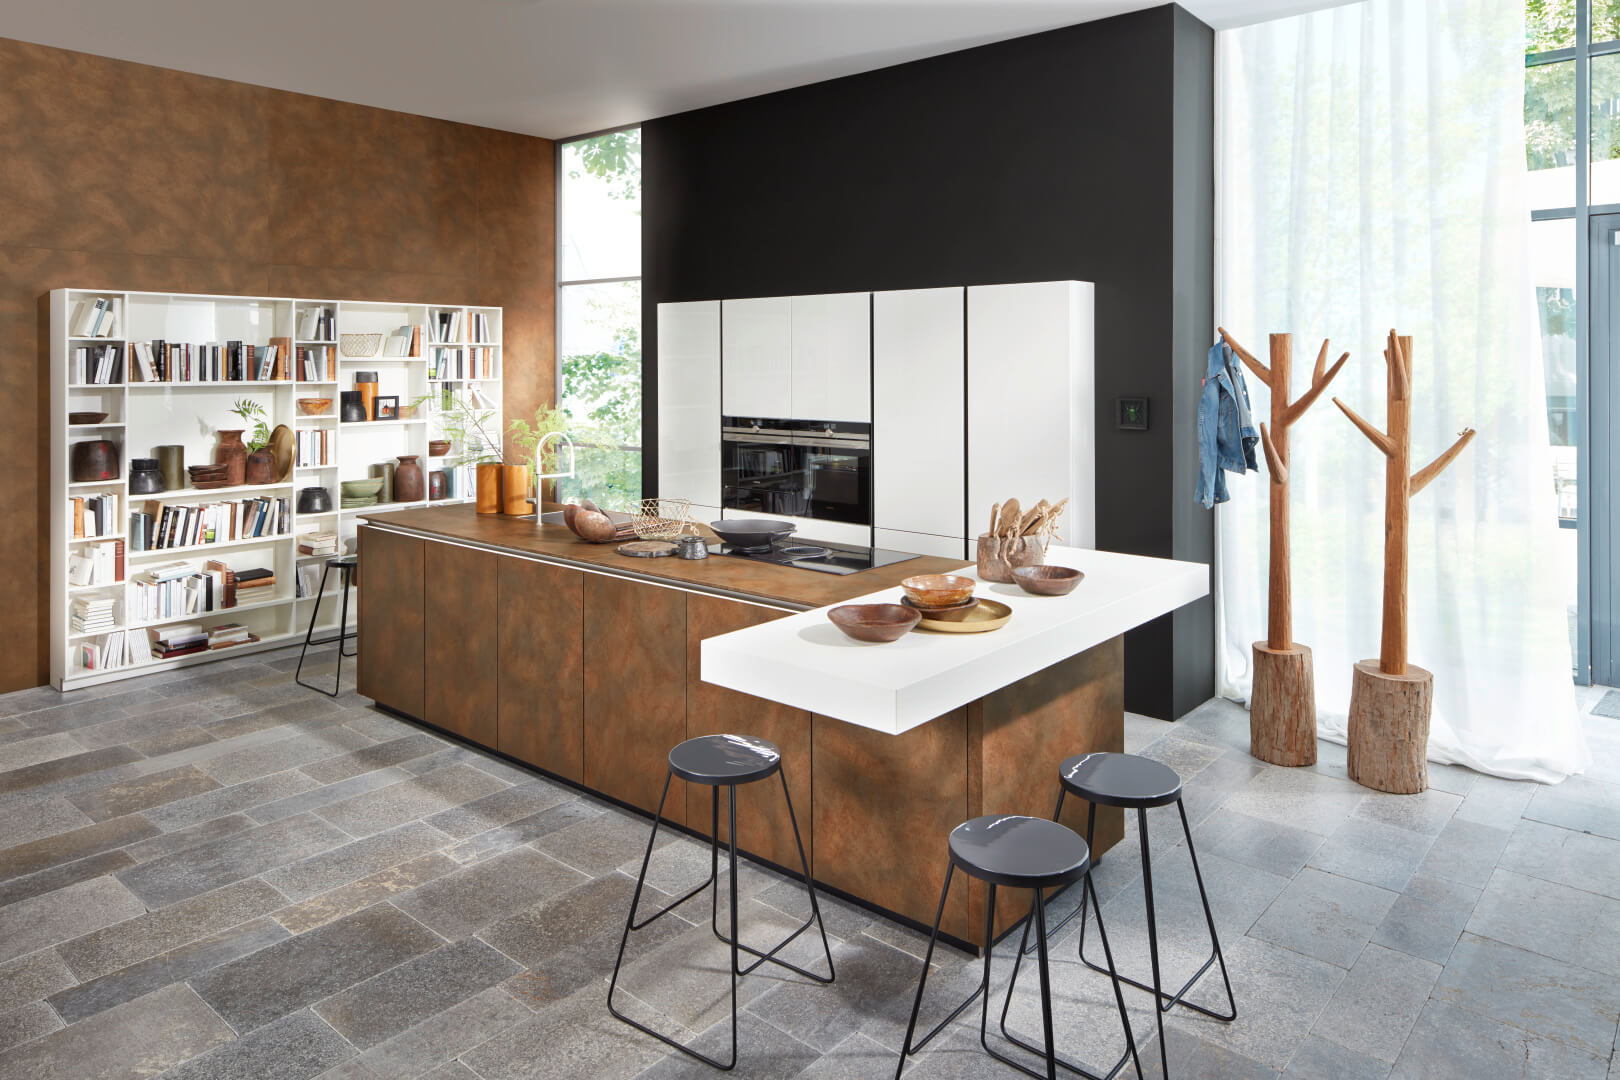 Nolte-Kitchens-Ferro-Gallery3